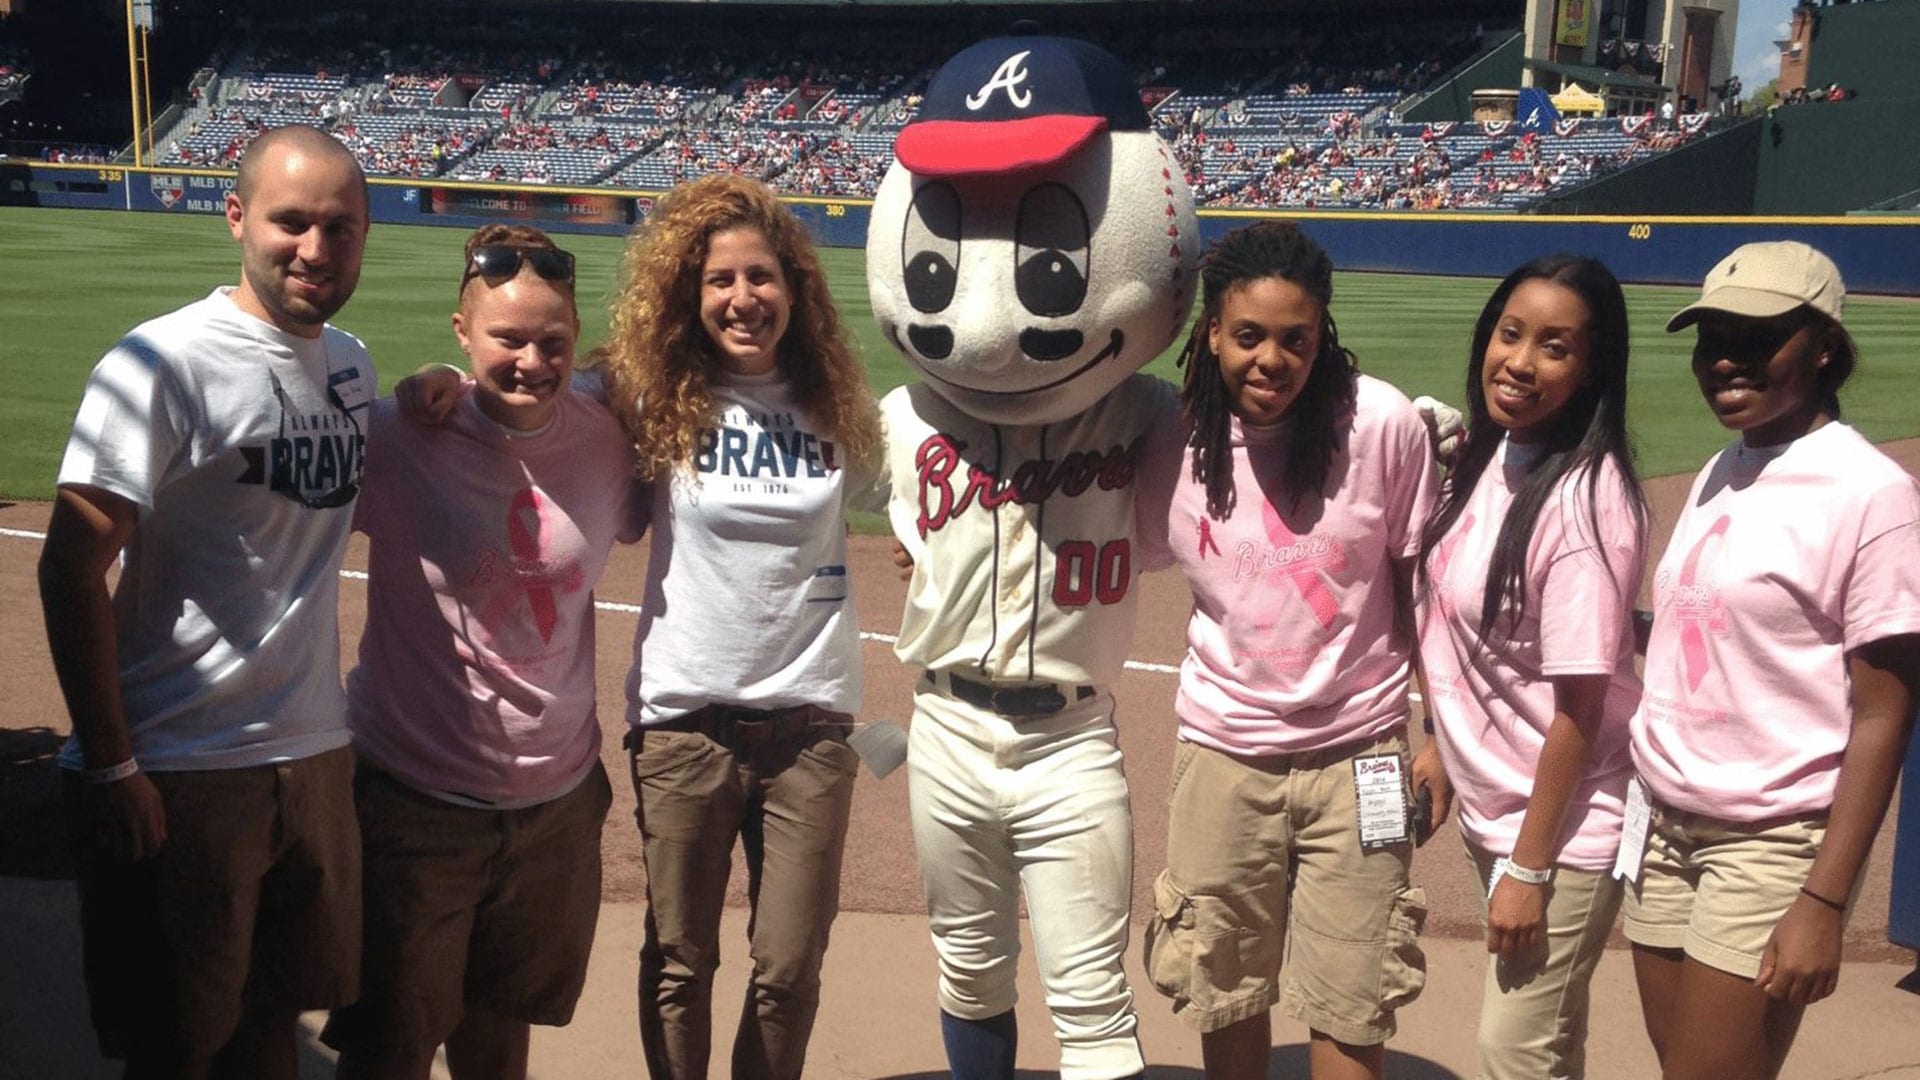 Sport administration students with the Braves mascot